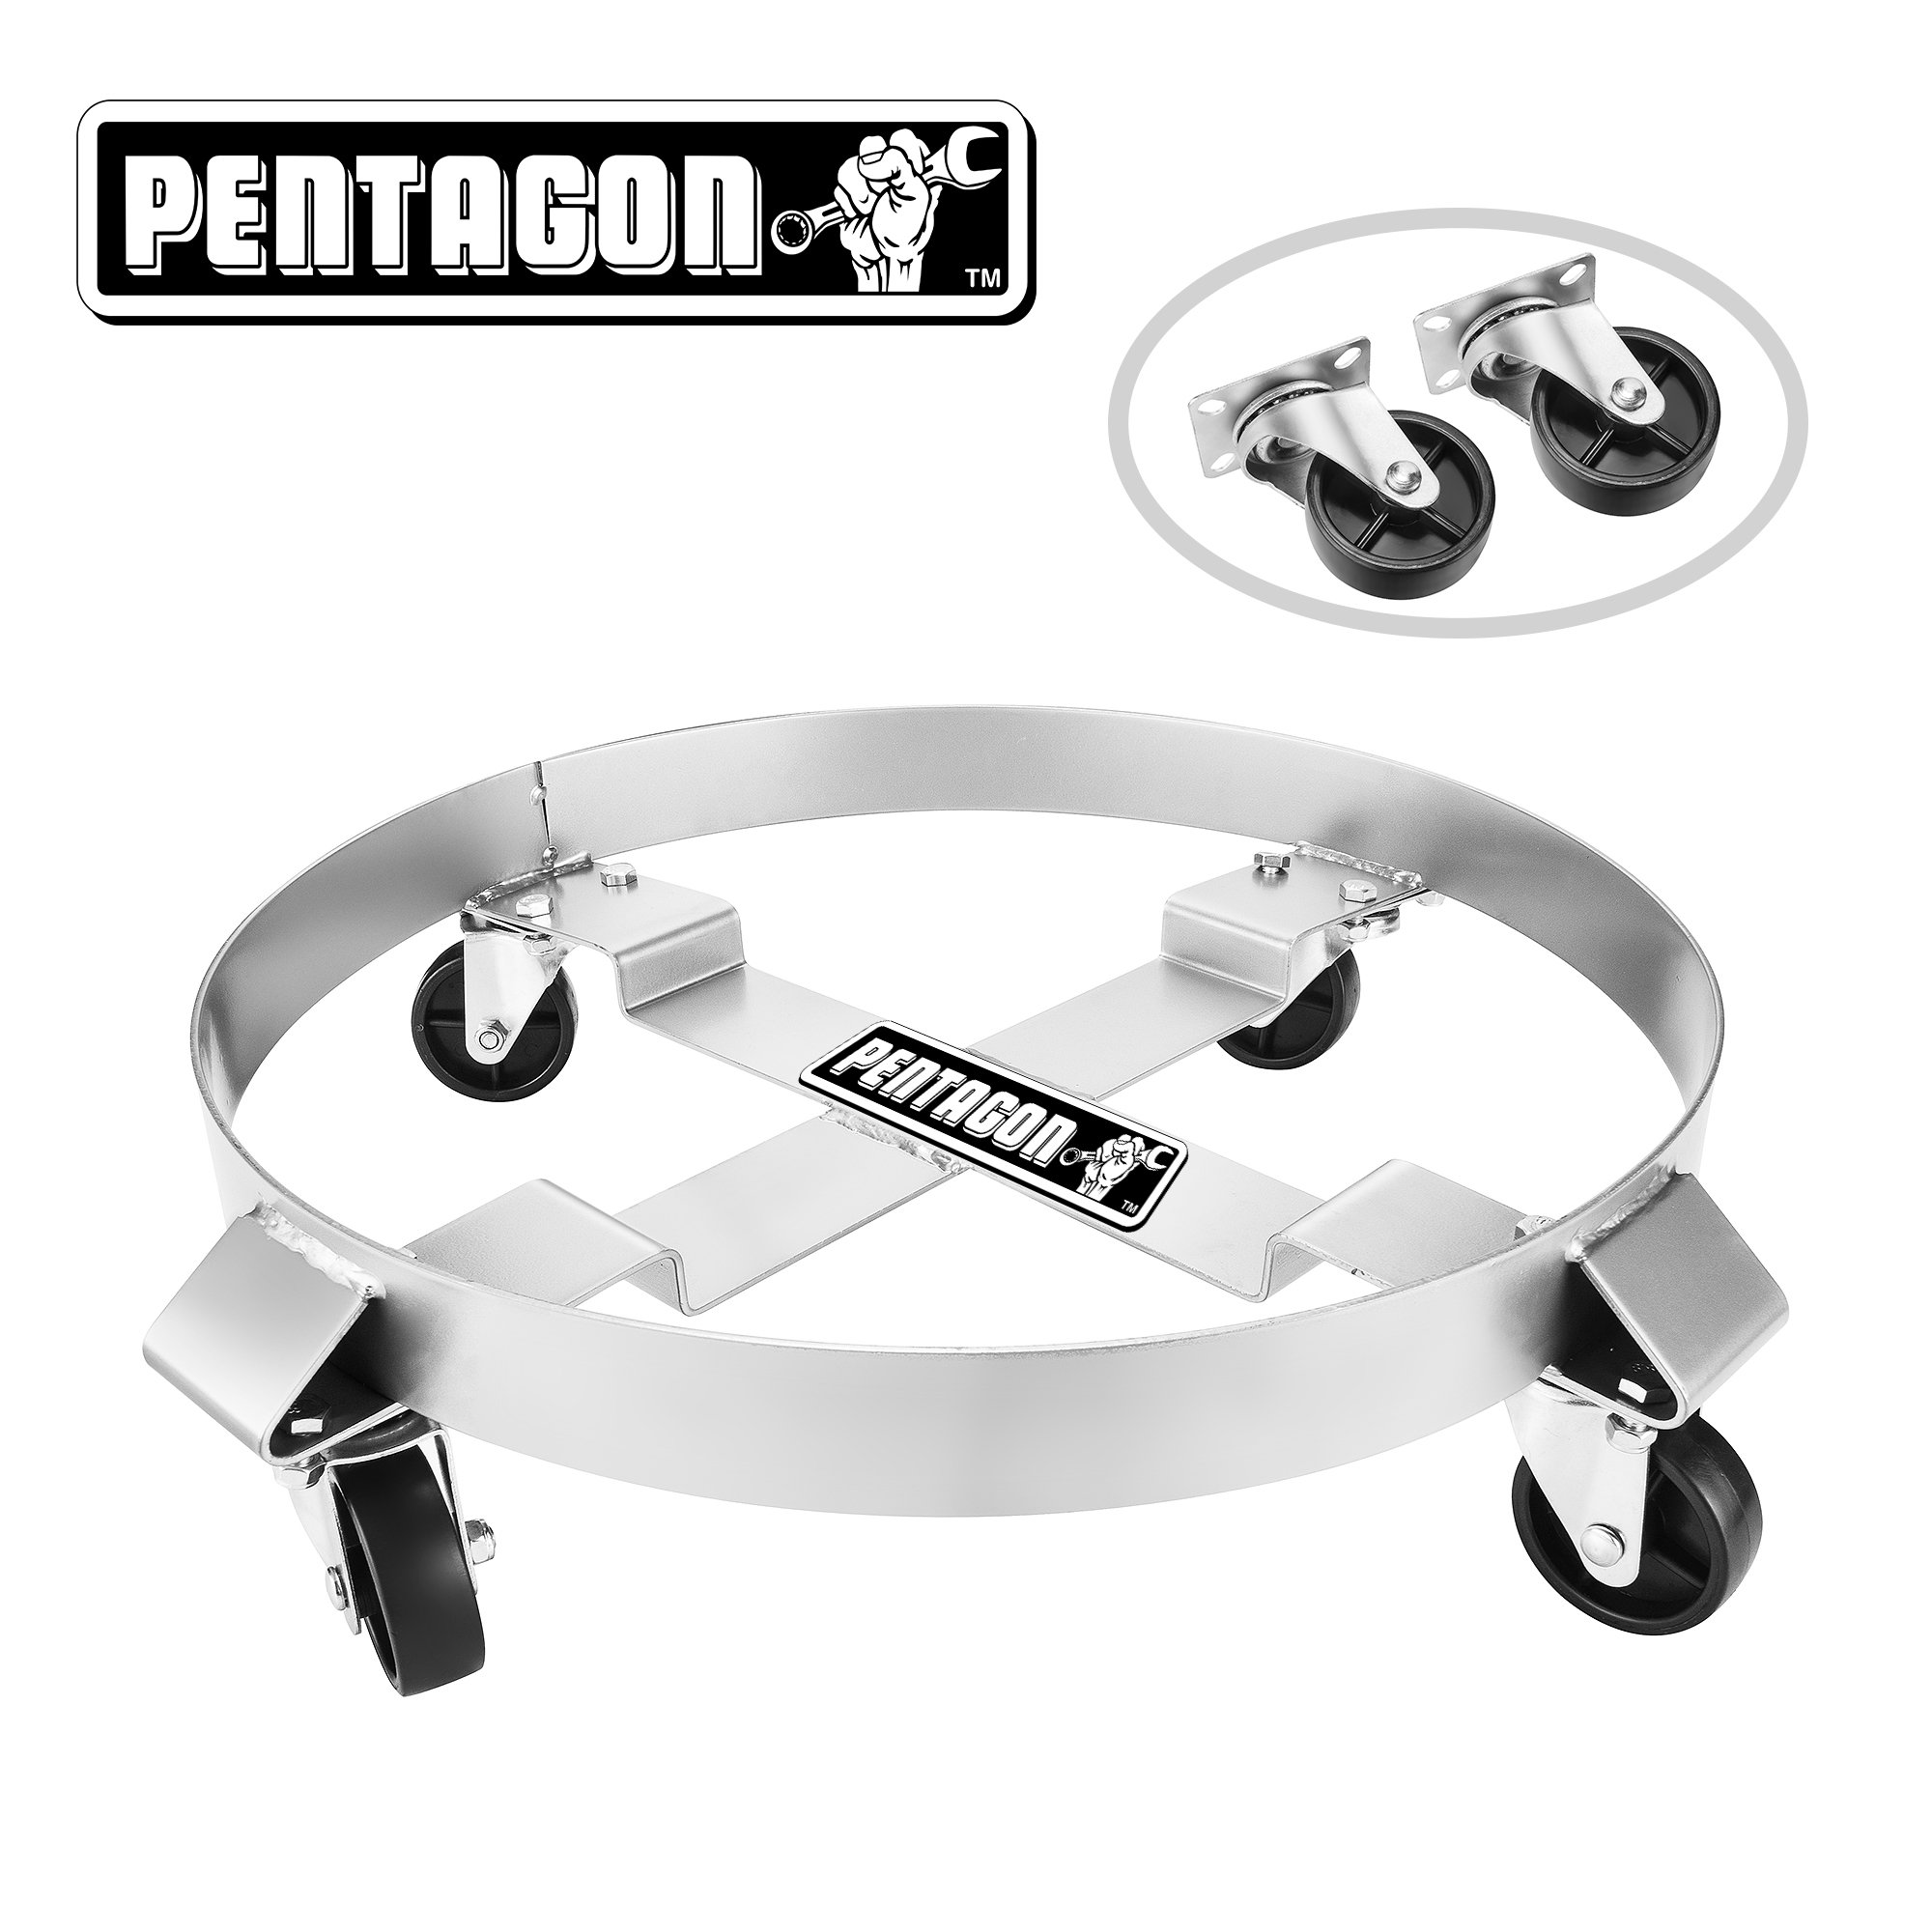 Pentagon 83-DT5495 Tool | Heavy Duty | 5 and 30-Gallon Drum Dolly | Single | Silver